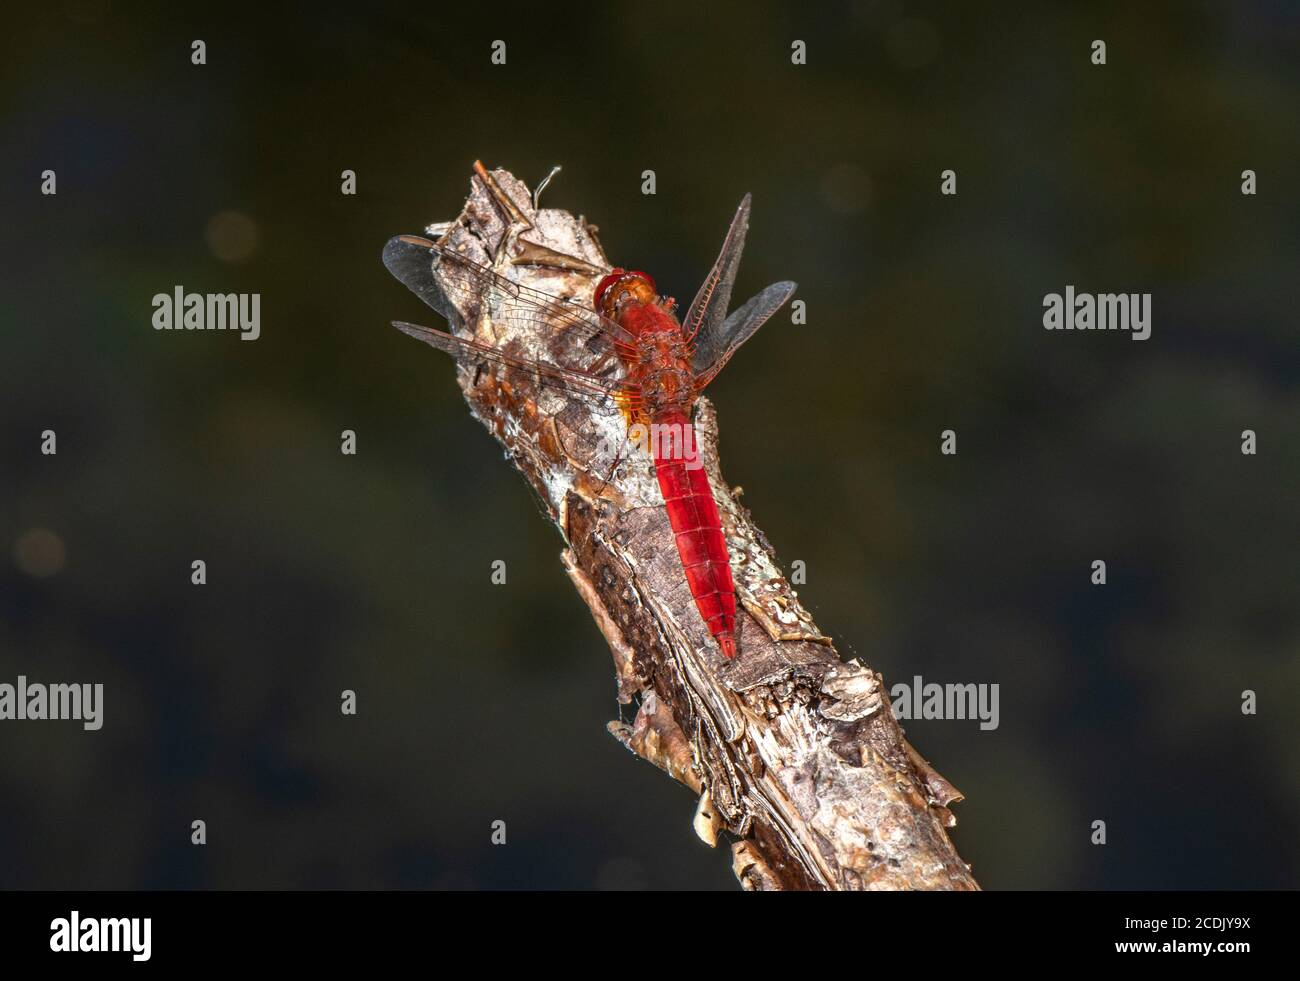 Male Broad scarlet, Crocothemis erythraea, perched over lake. France. Stock Photo